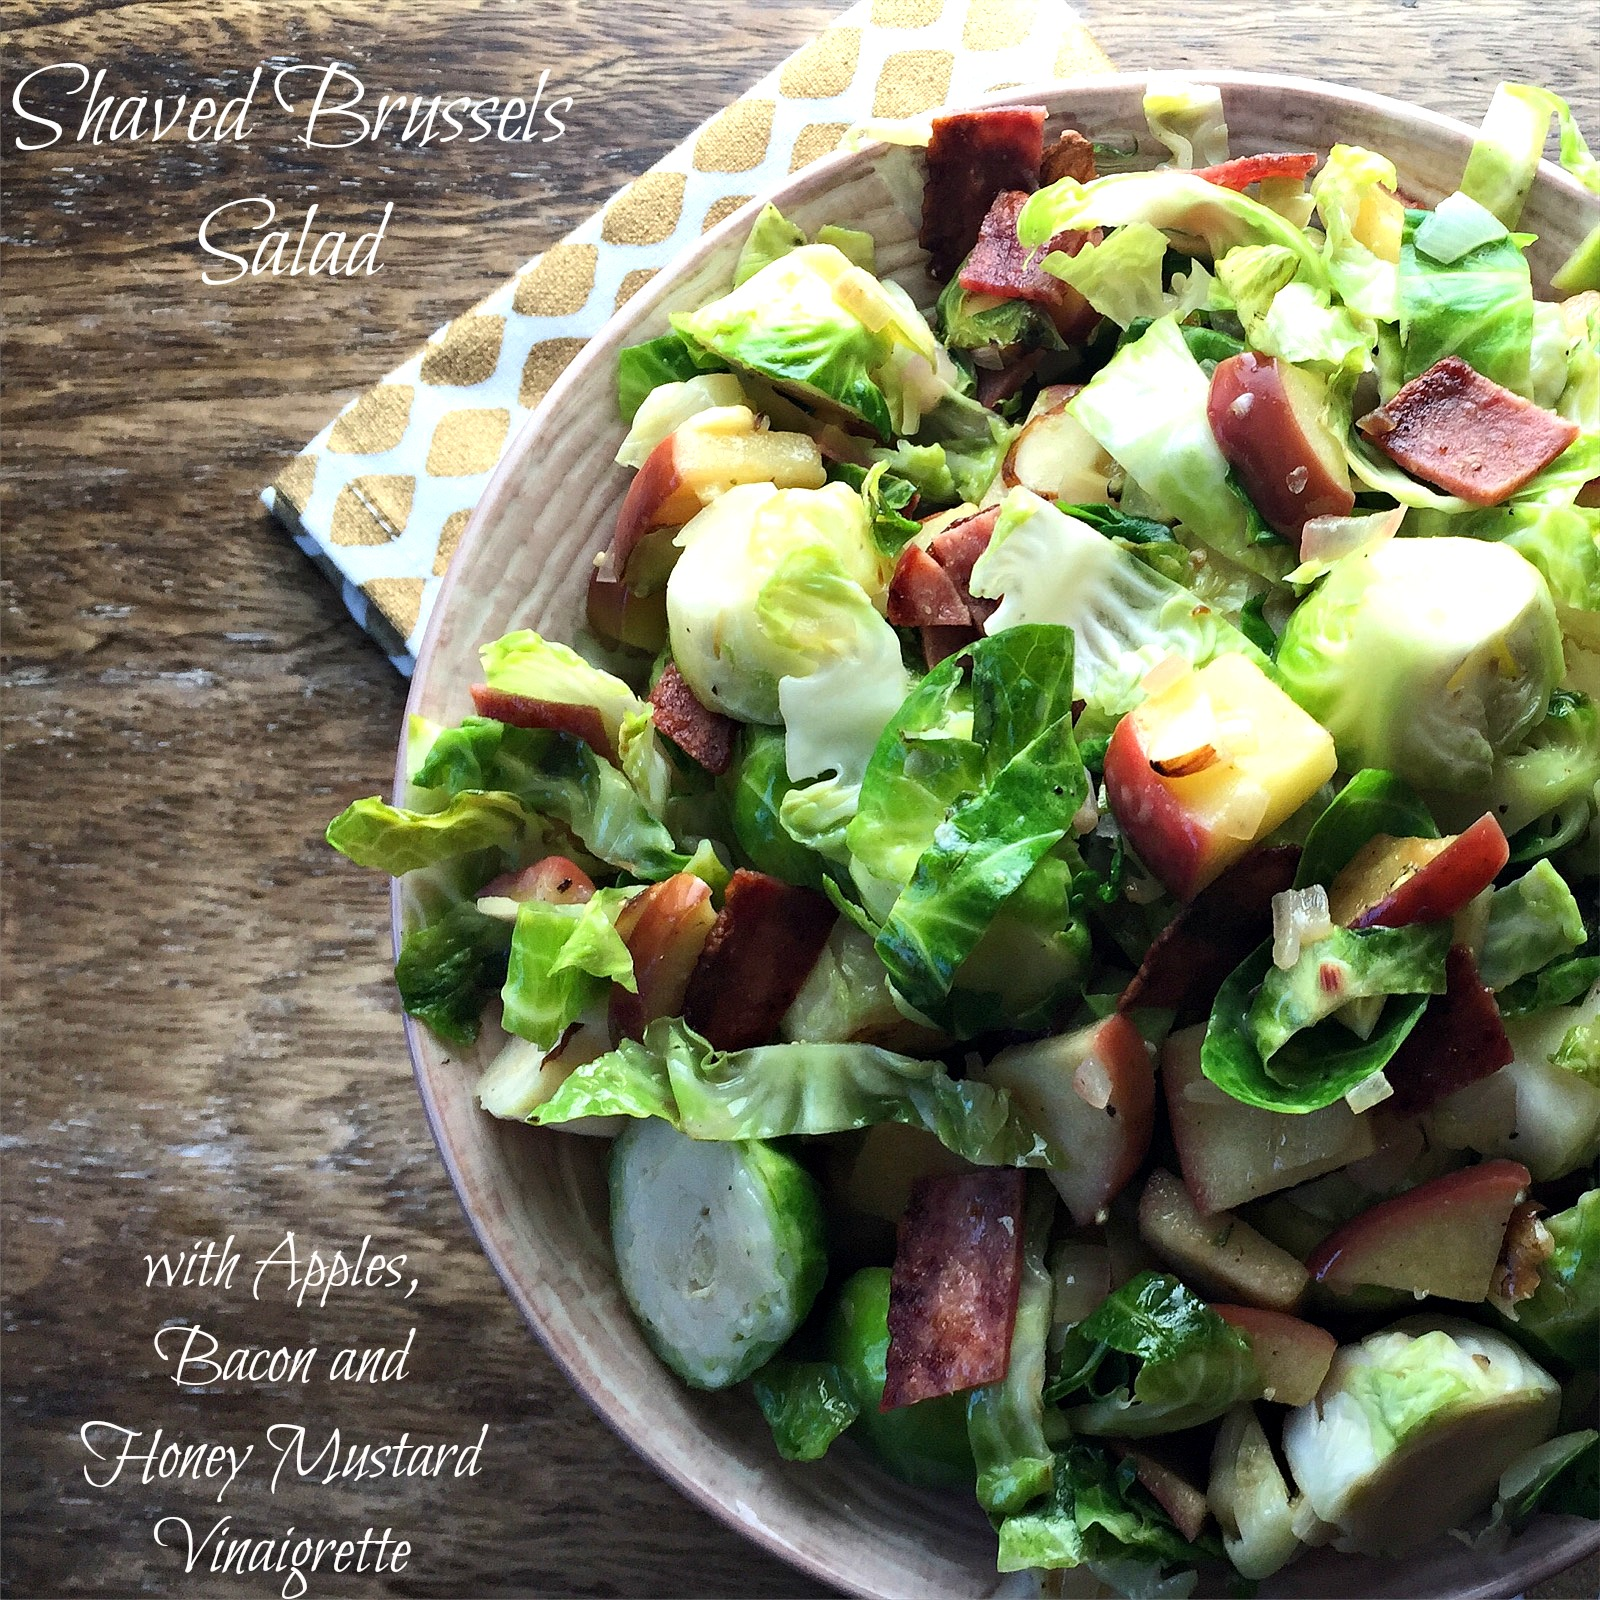 Shaved Brussels Salad with Apples, Bacon and Honey Mustard Vinaigrette